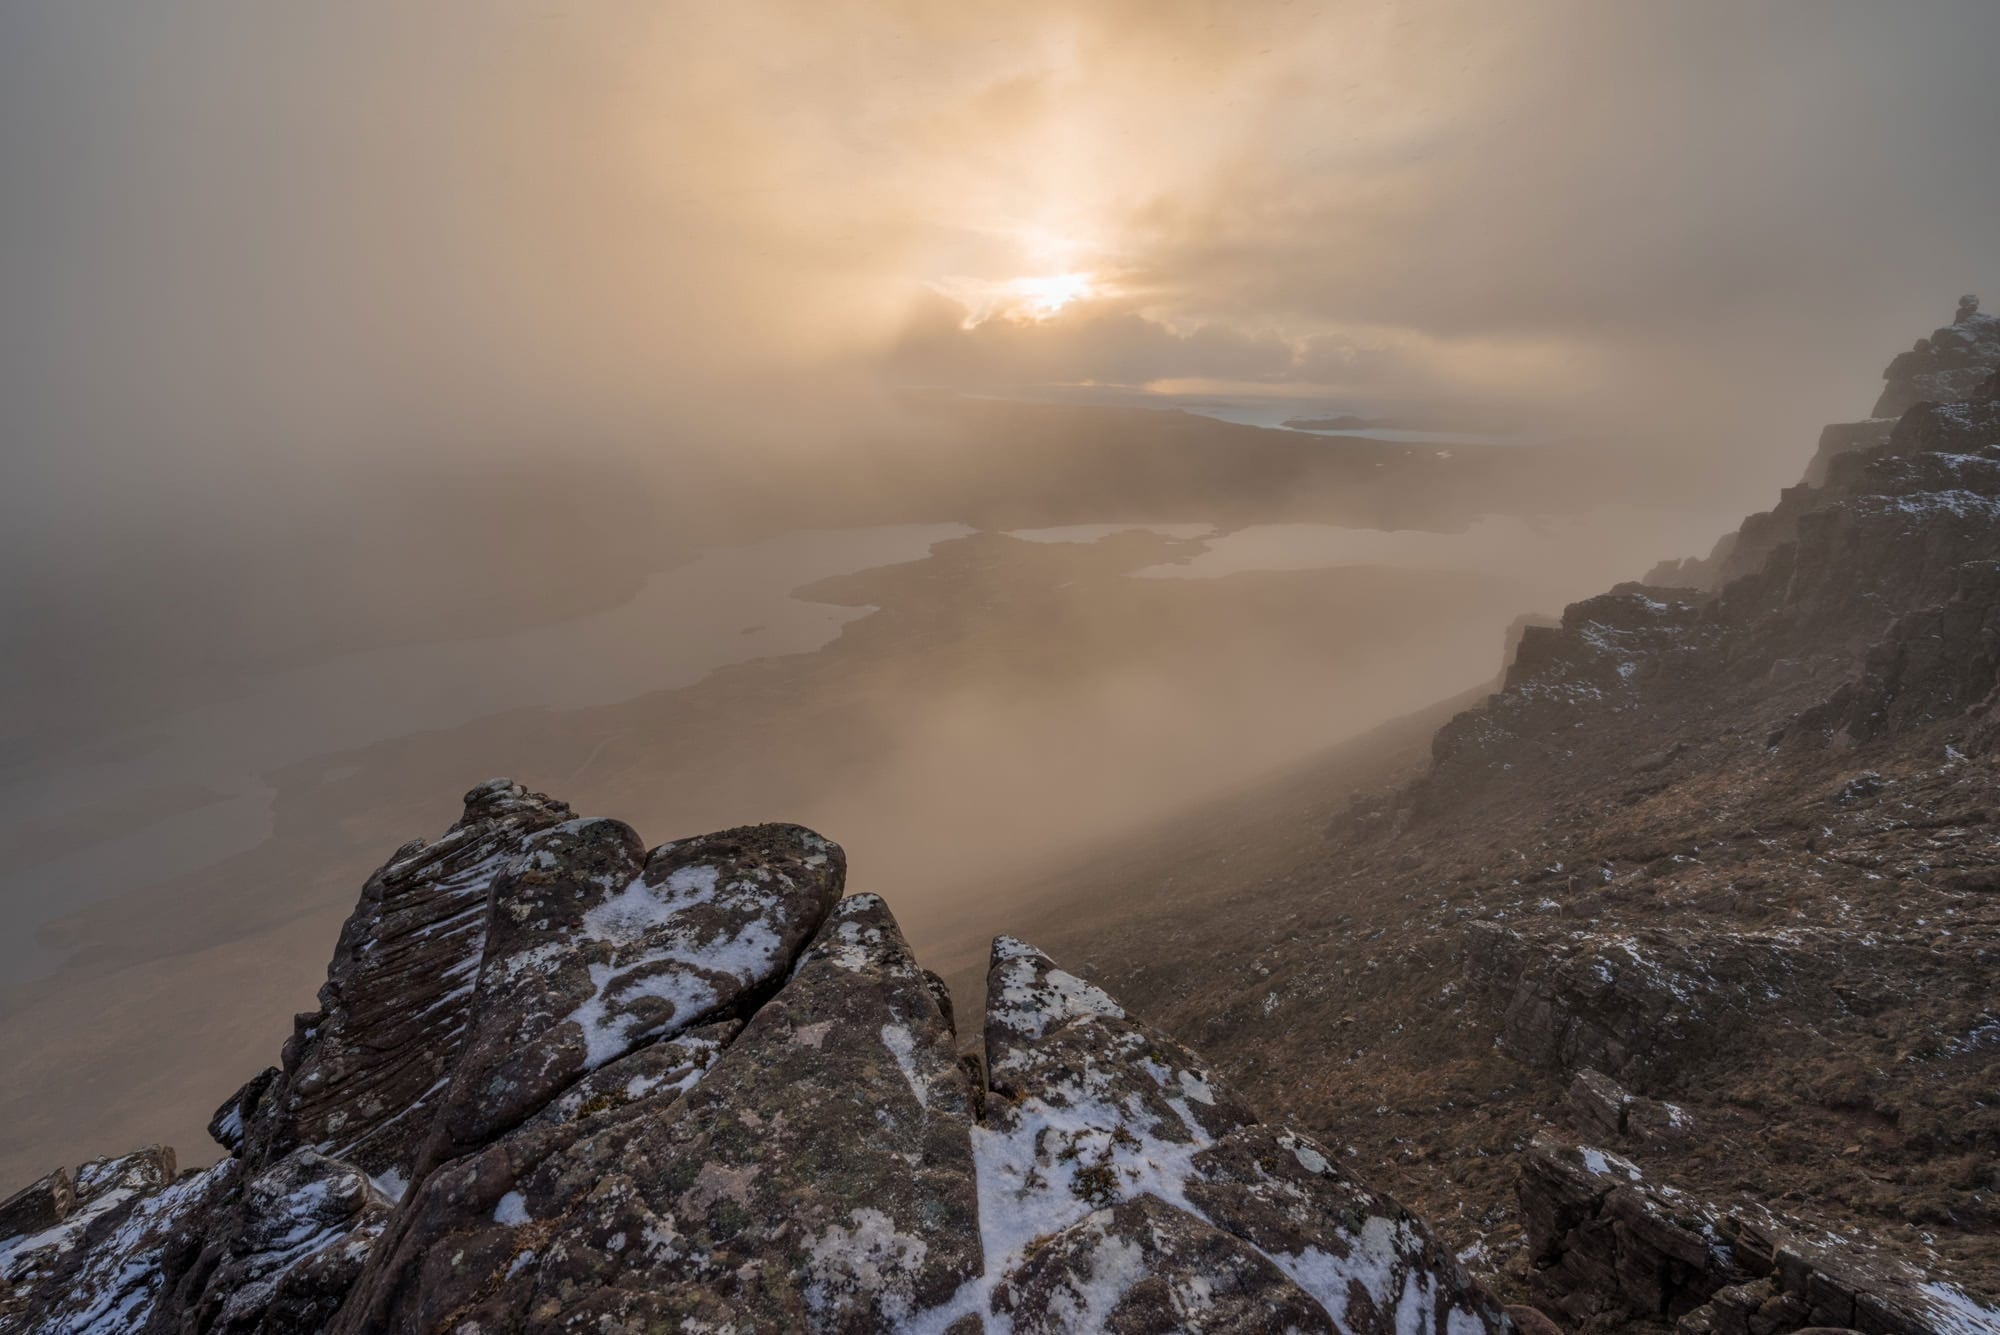 Stac Polliadh Mists - Scotland Wild Camping Photography Workshop